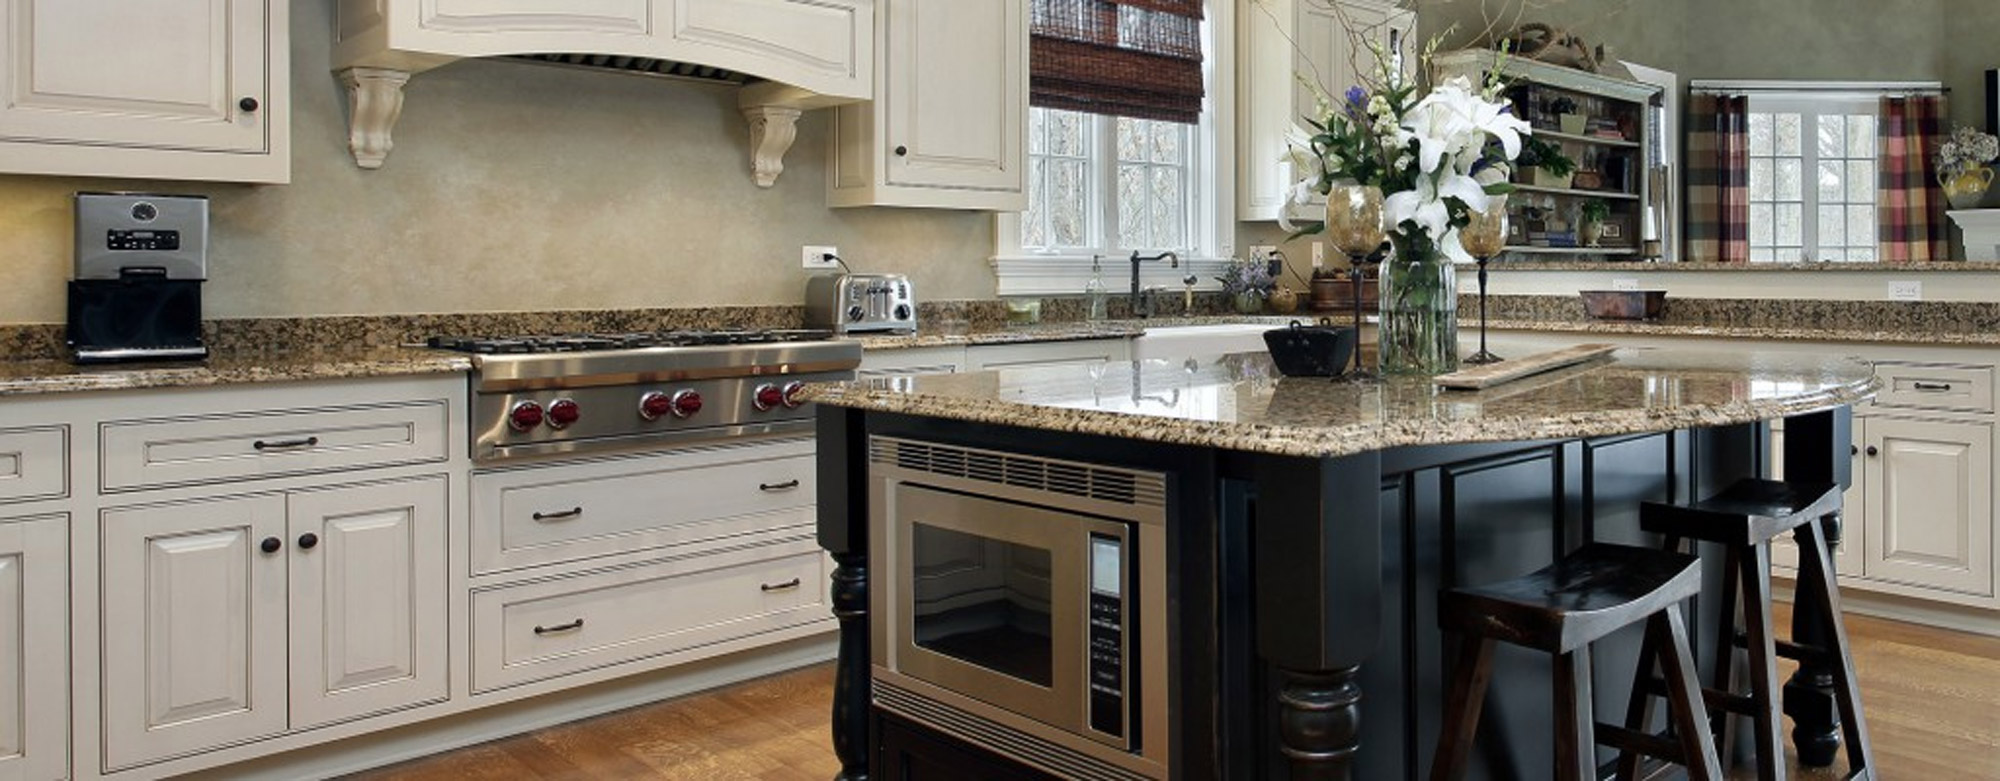 Granite Countertops Salt Lake City Utah Granite Countertops Salt Lake City Utah Starting At 29